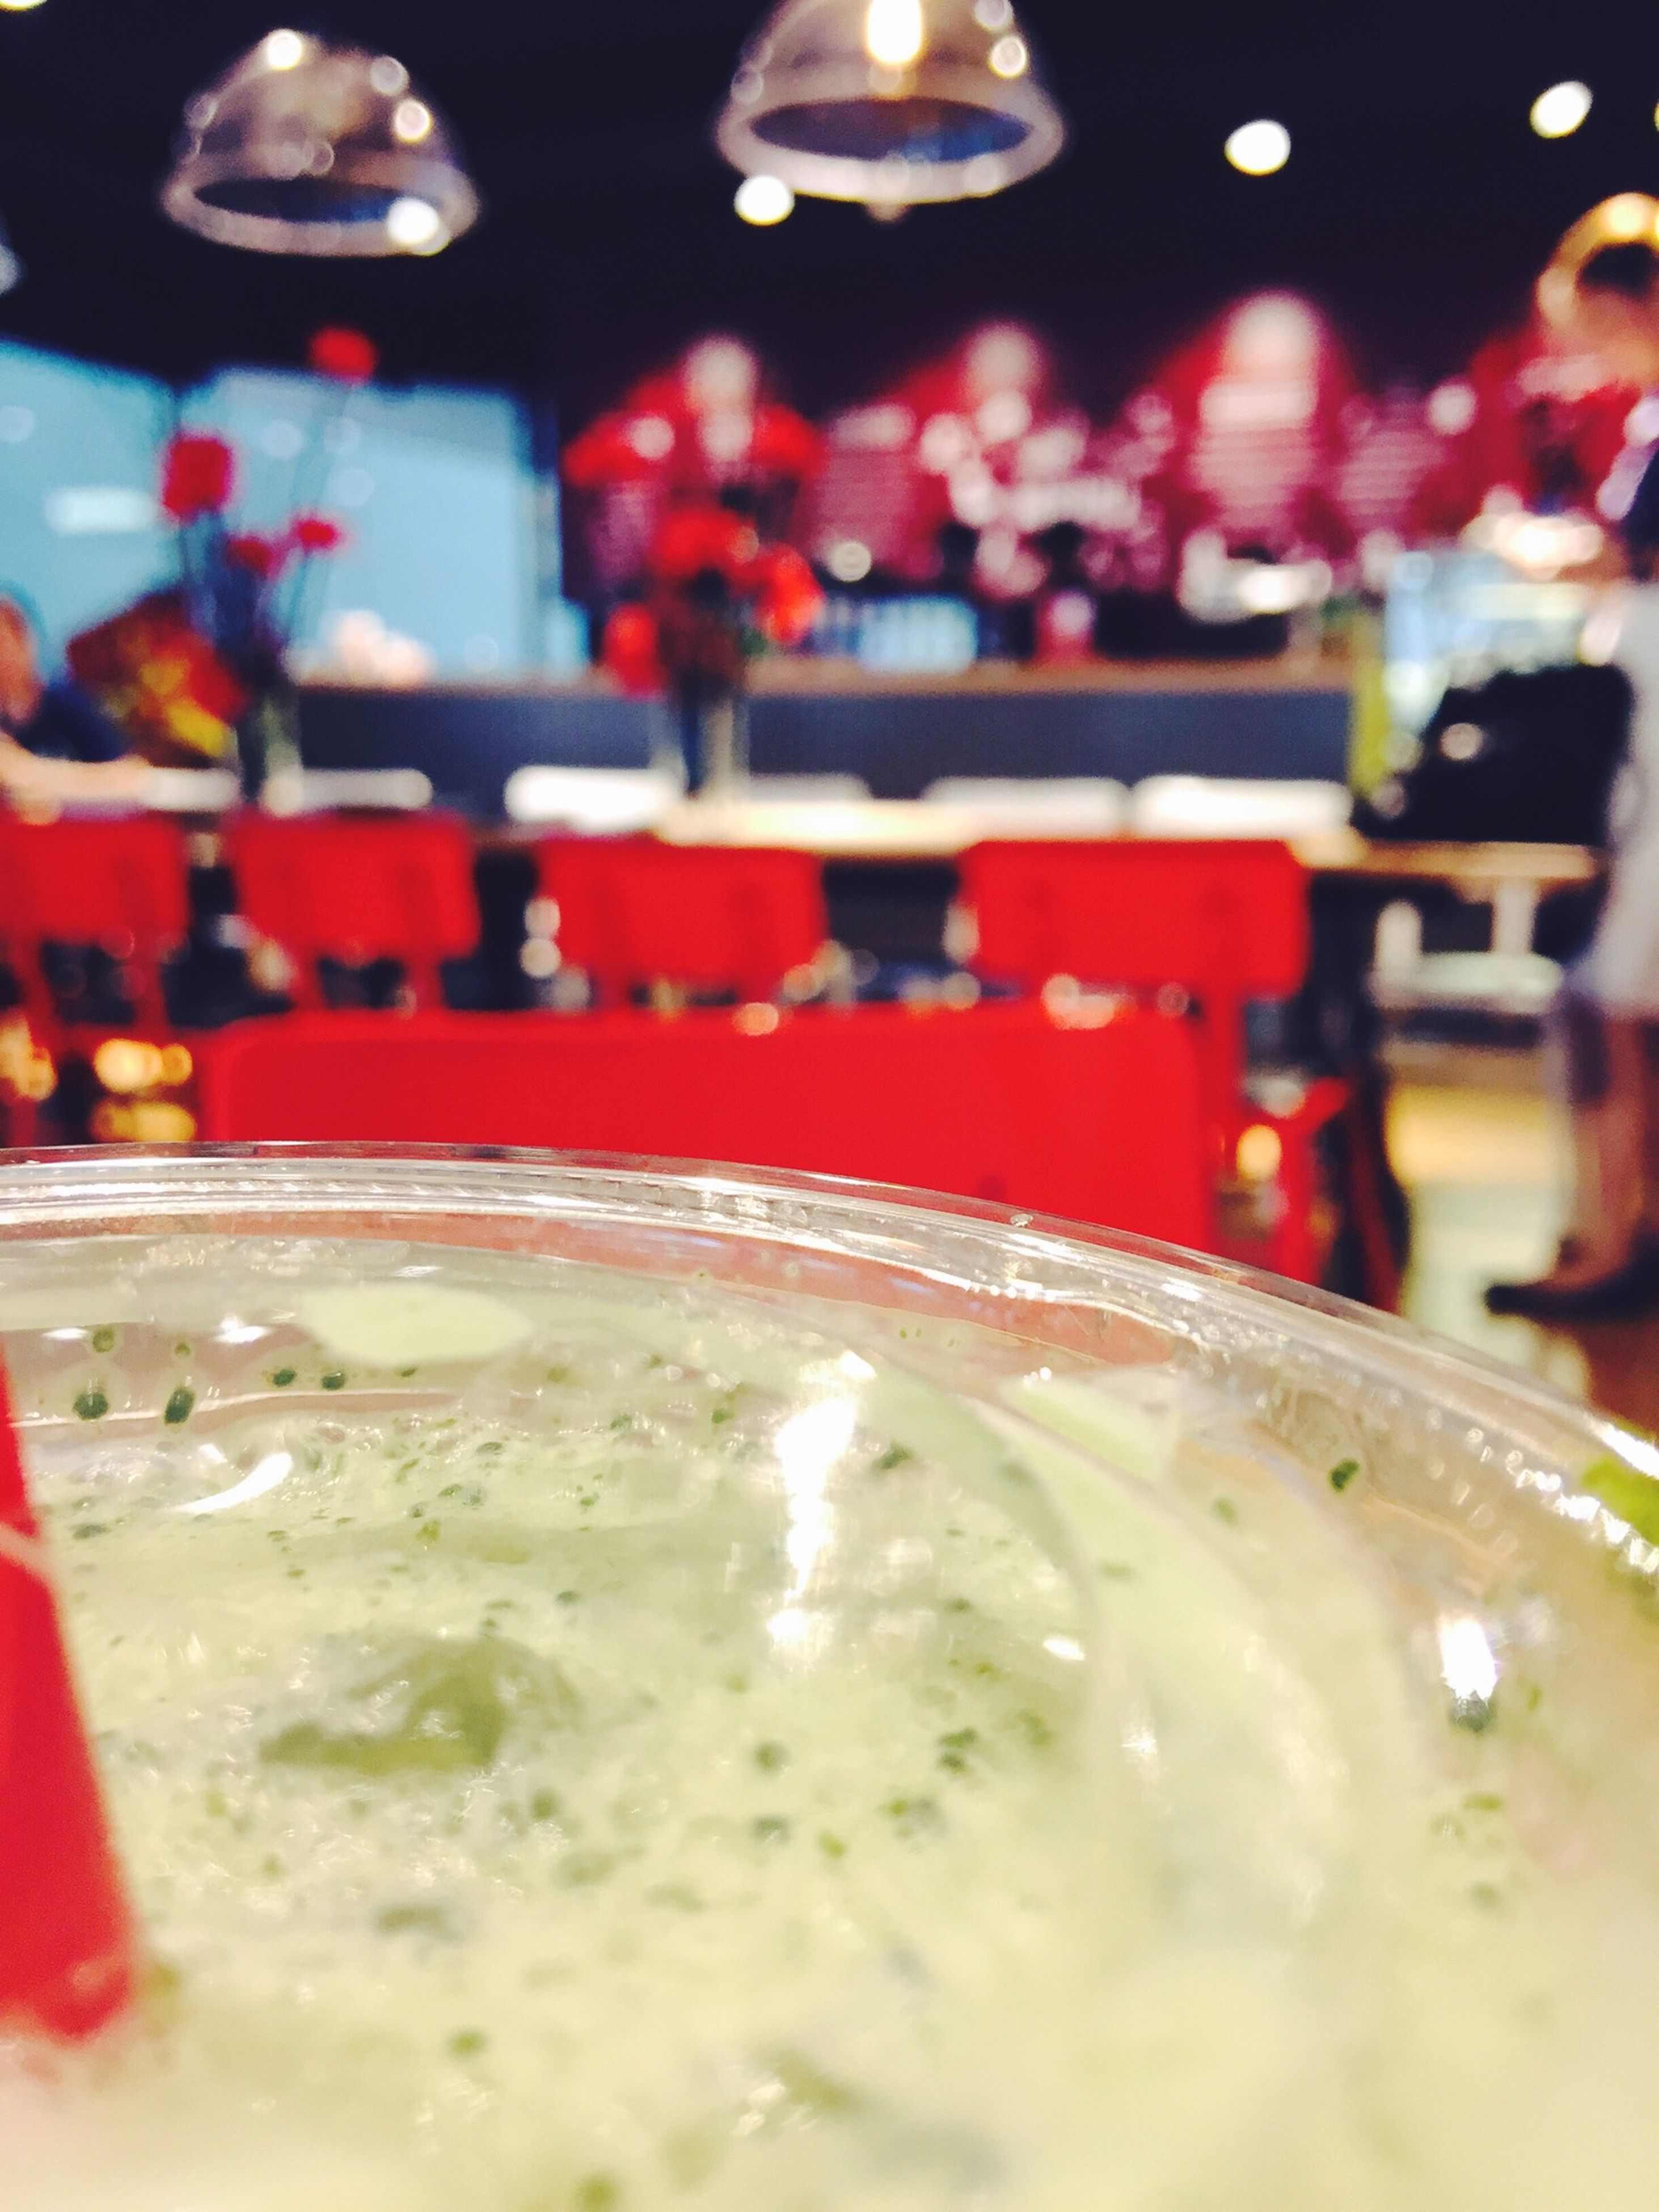 indoors, food and drink, selective focus, food, close-up, focus on foreground, freshness, still life, table, ready-to-eat, restaurant, bowl, plate, meal, healthy eating, incidental people, red, indulgence, no people, serving size